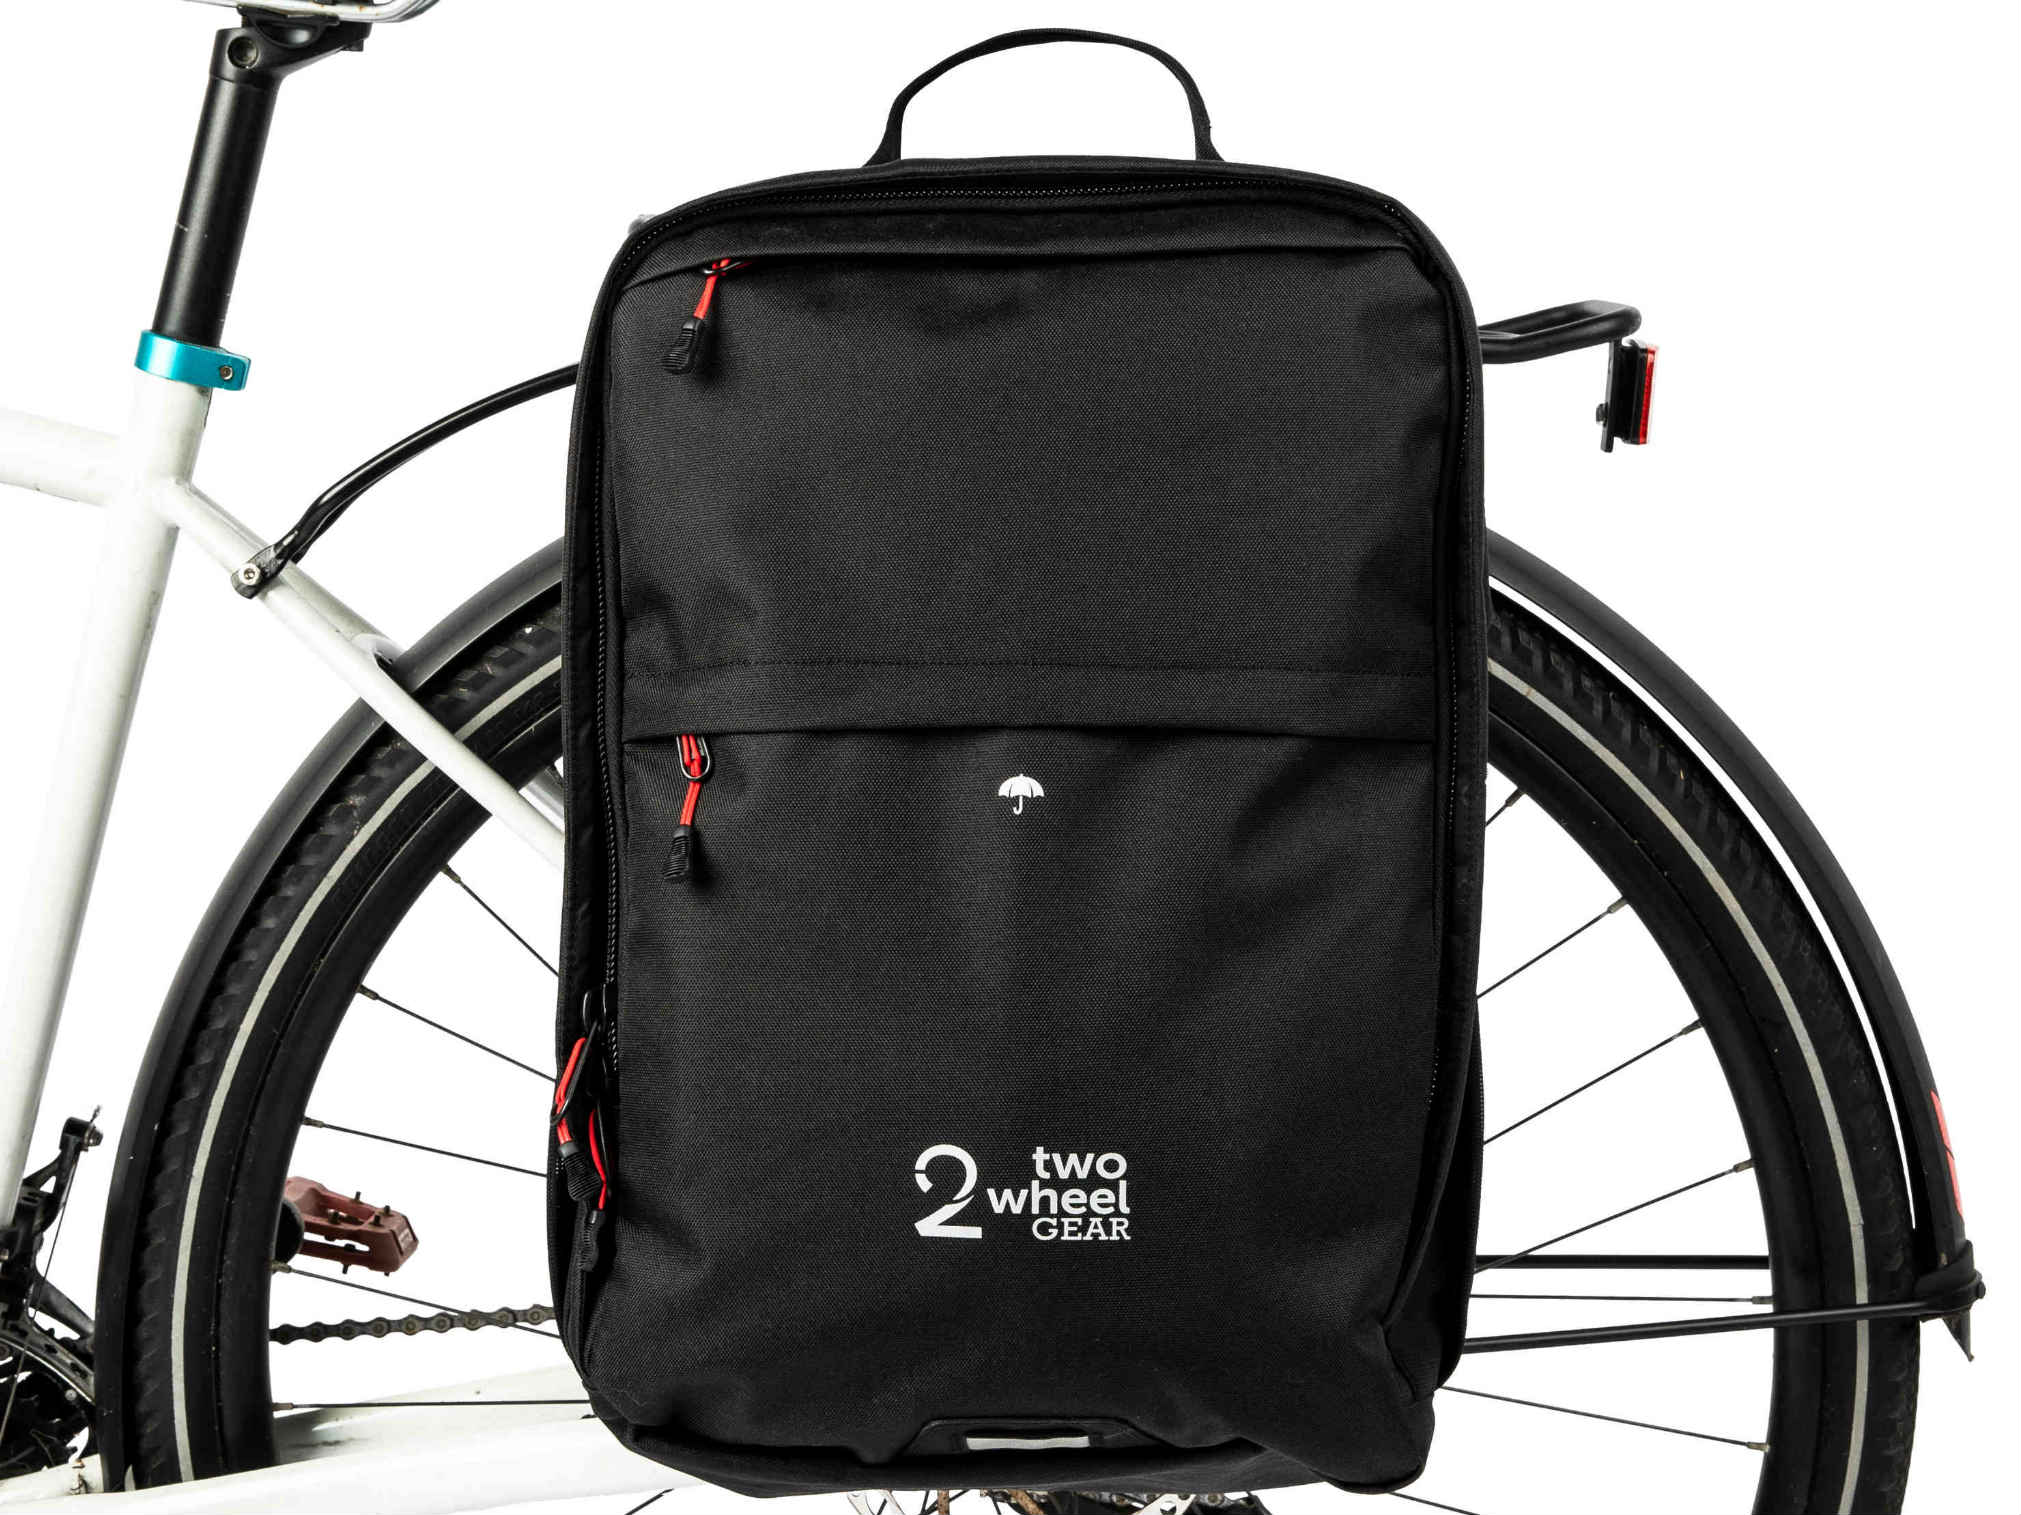 Two Wheel Gear Pannier Backpack Convertible 2 in 1 Bike Commuting and Travel Bag